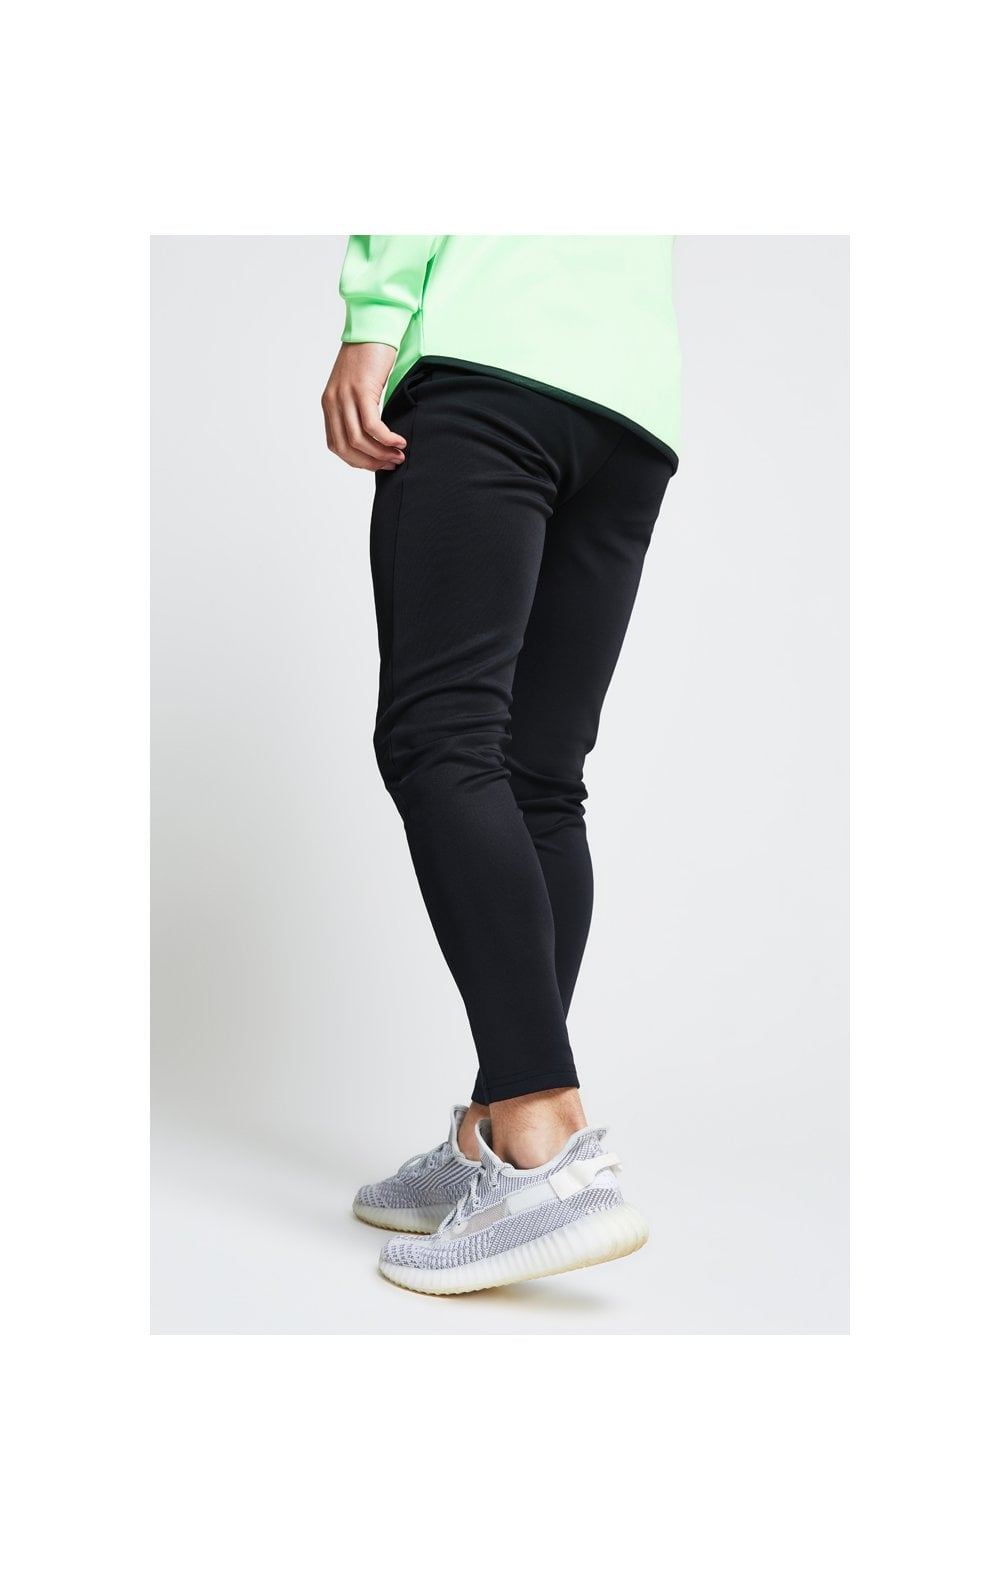 Illusive London Athlete Pants – Black & Neon Green (4)